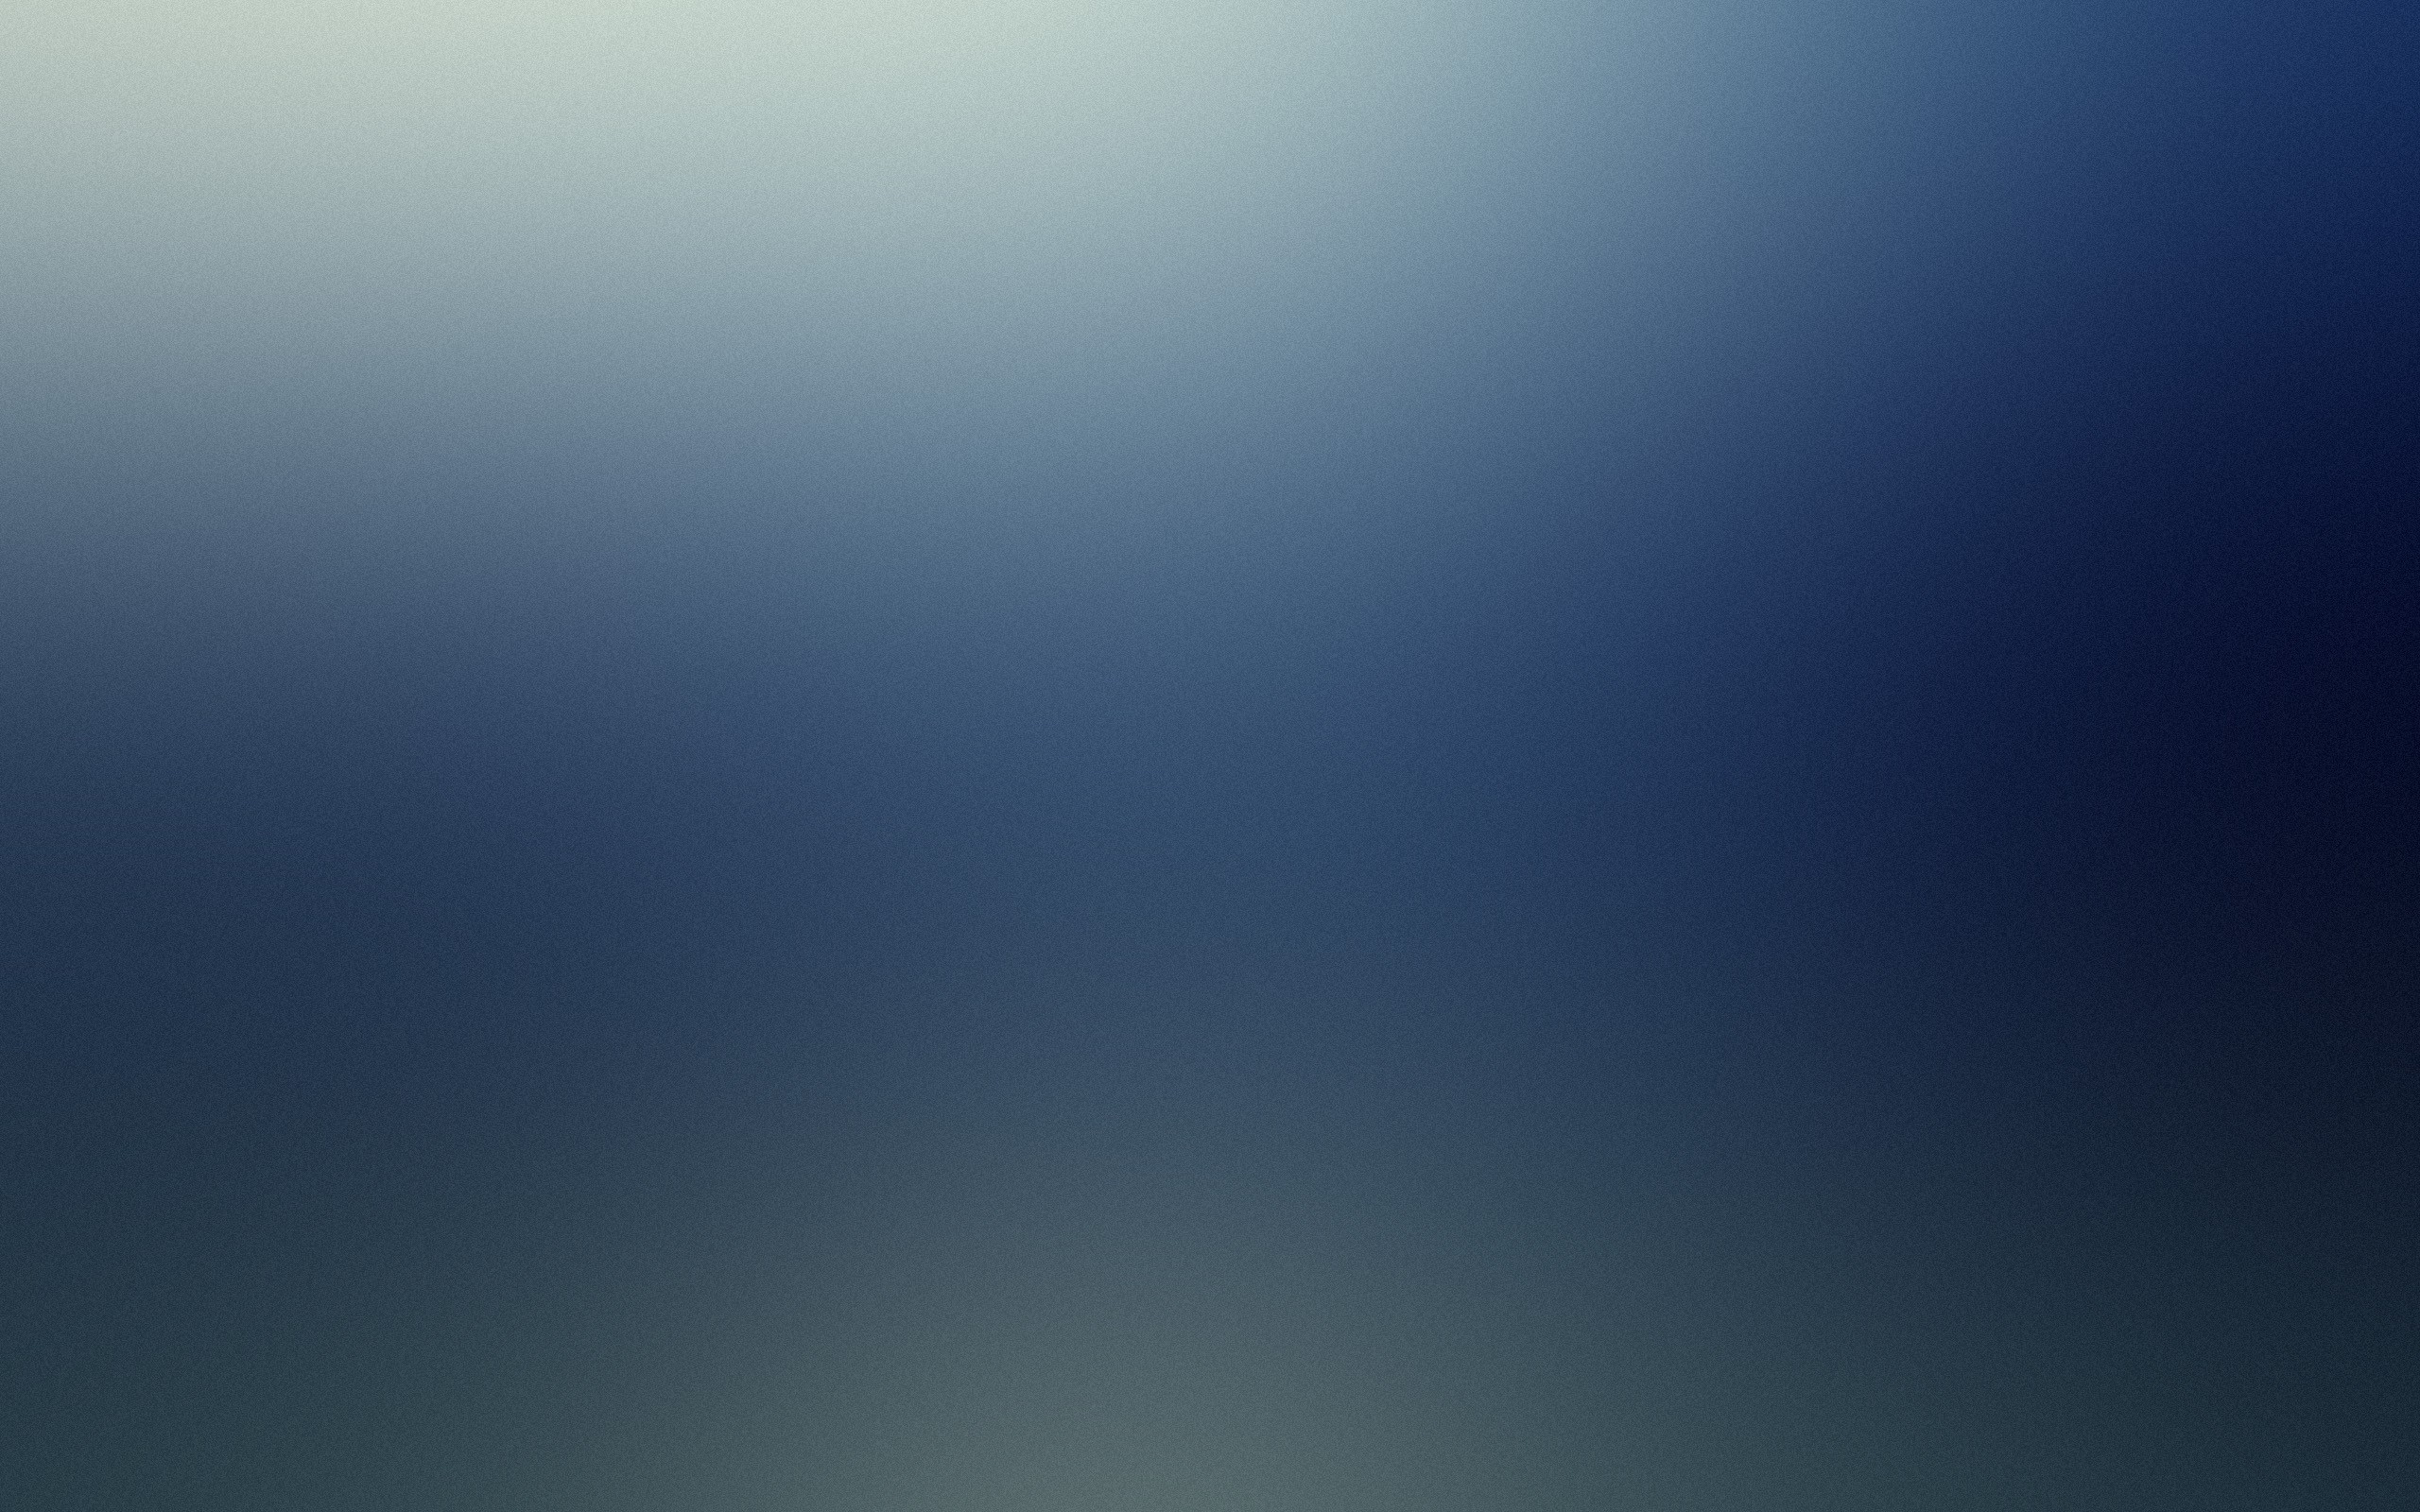 blur wallpapers free - photo #28